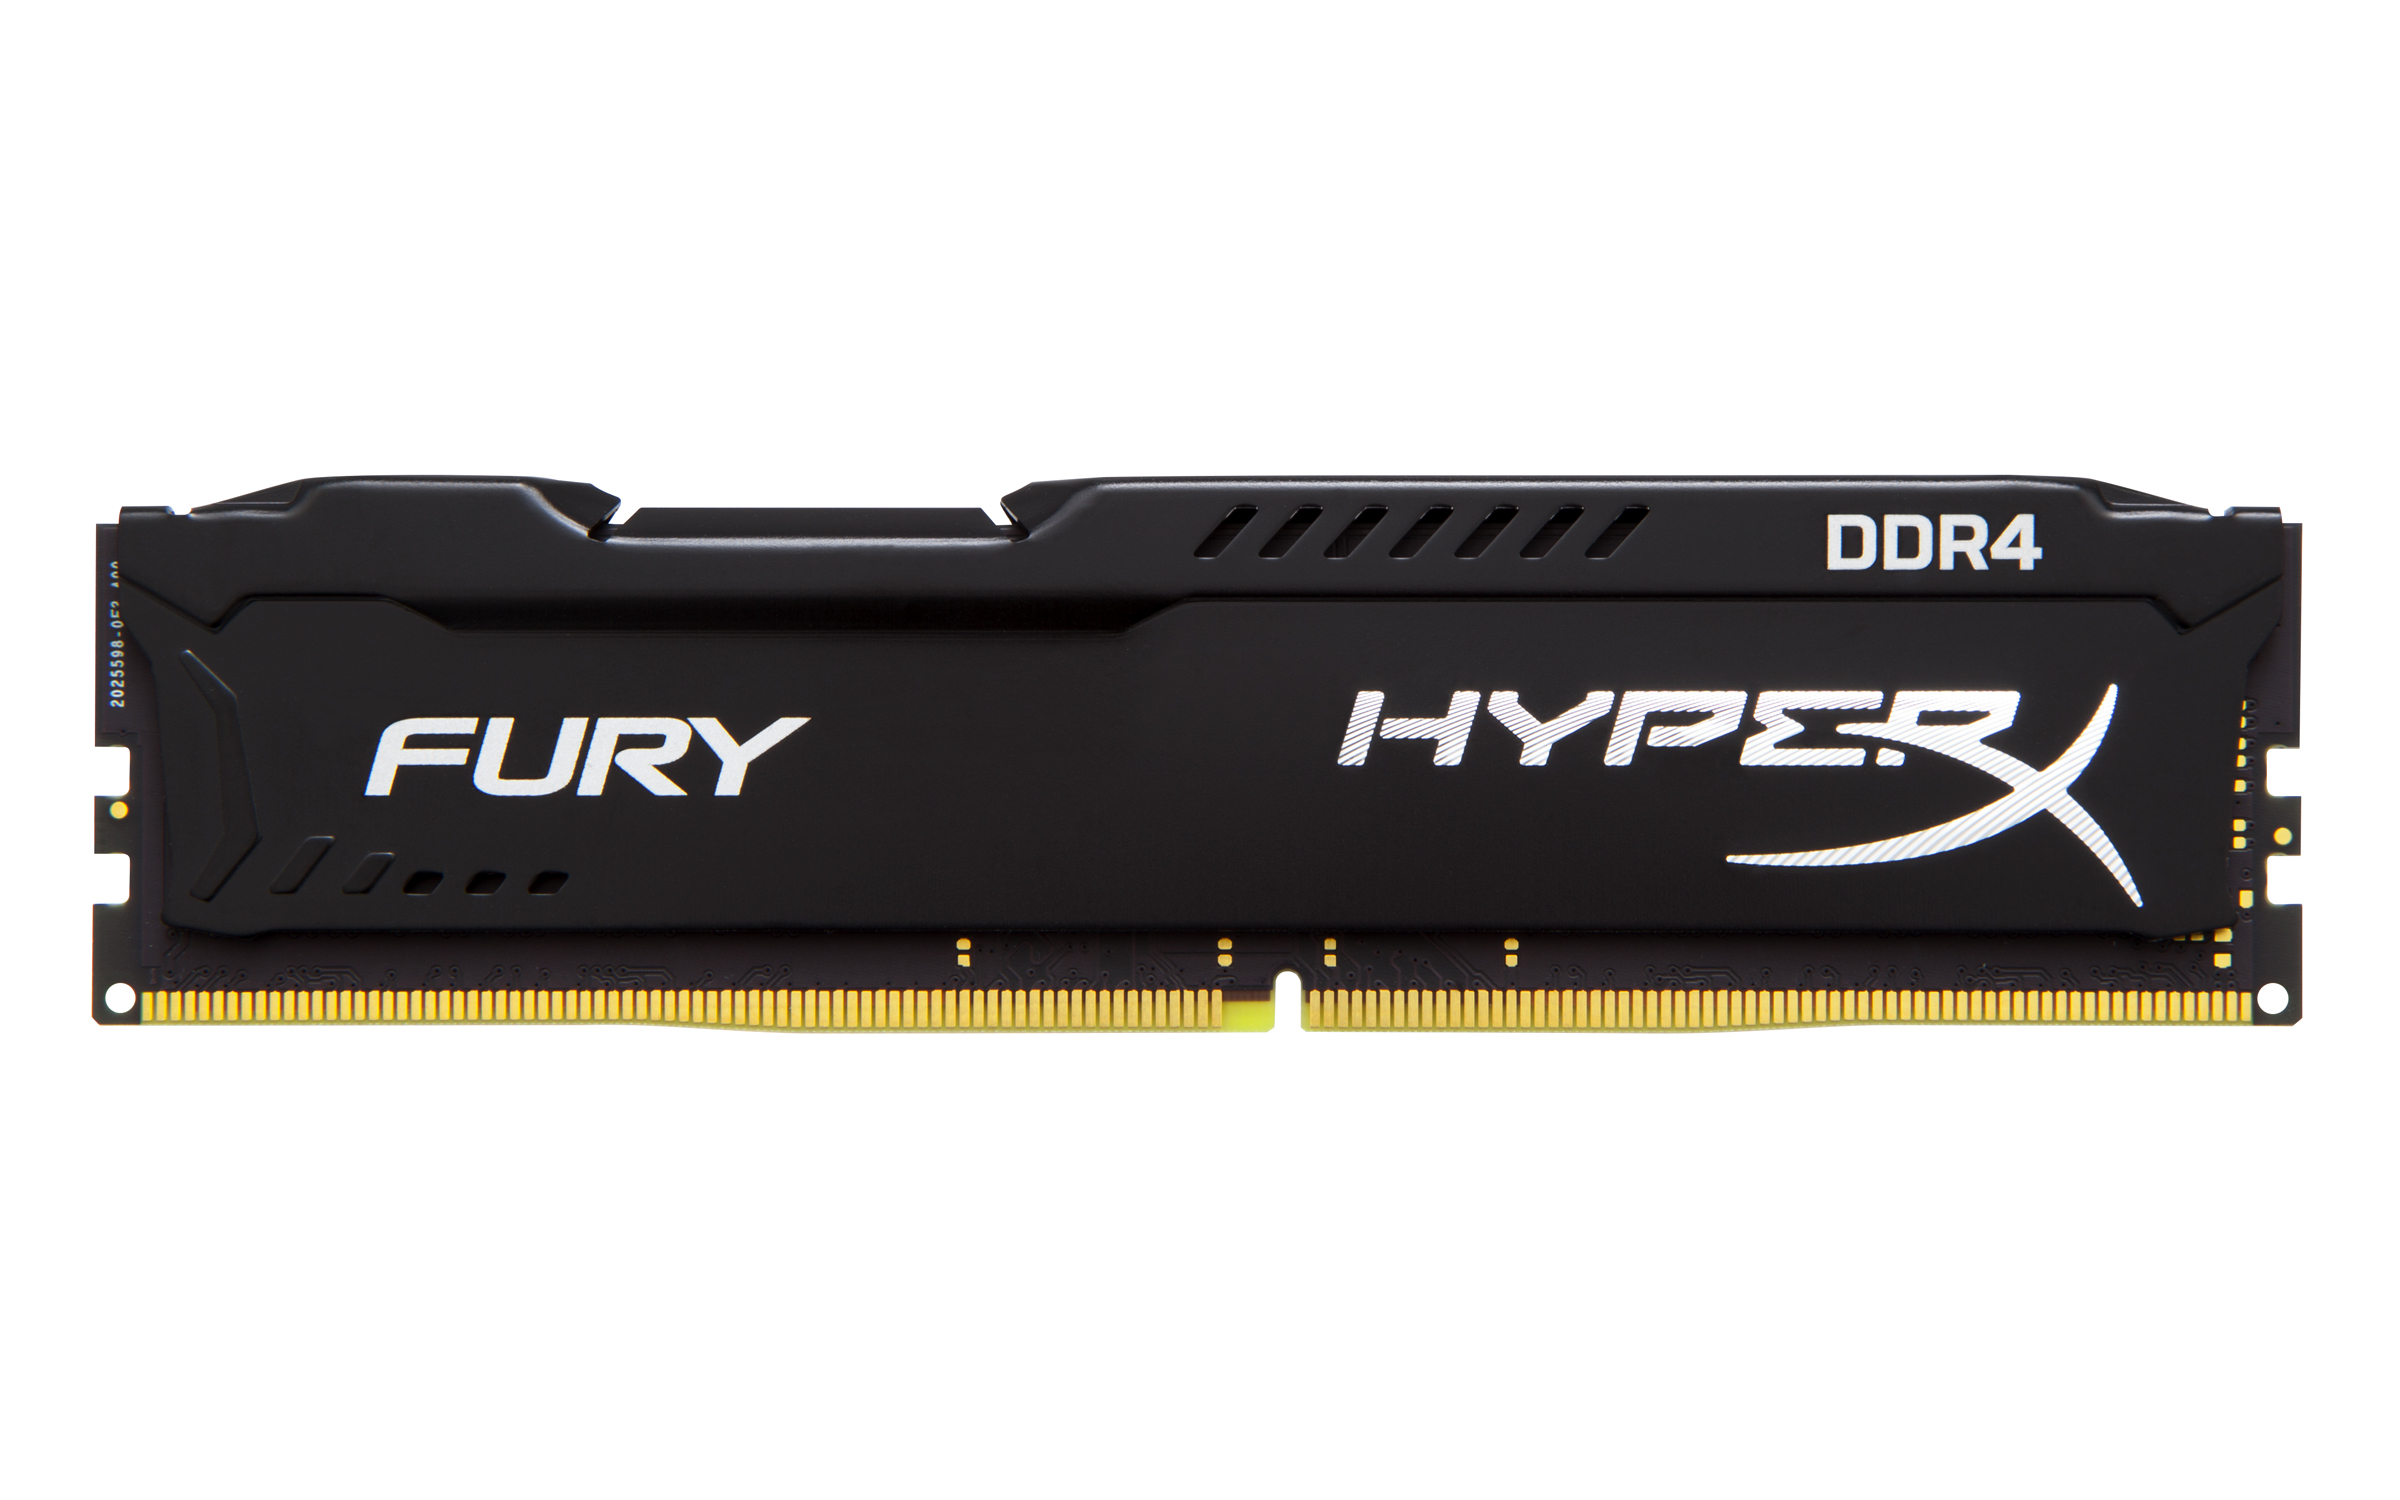 Ram Kingston 8GB 2400Mhz DDR4 CL15 DIMM Fury HyperX Black